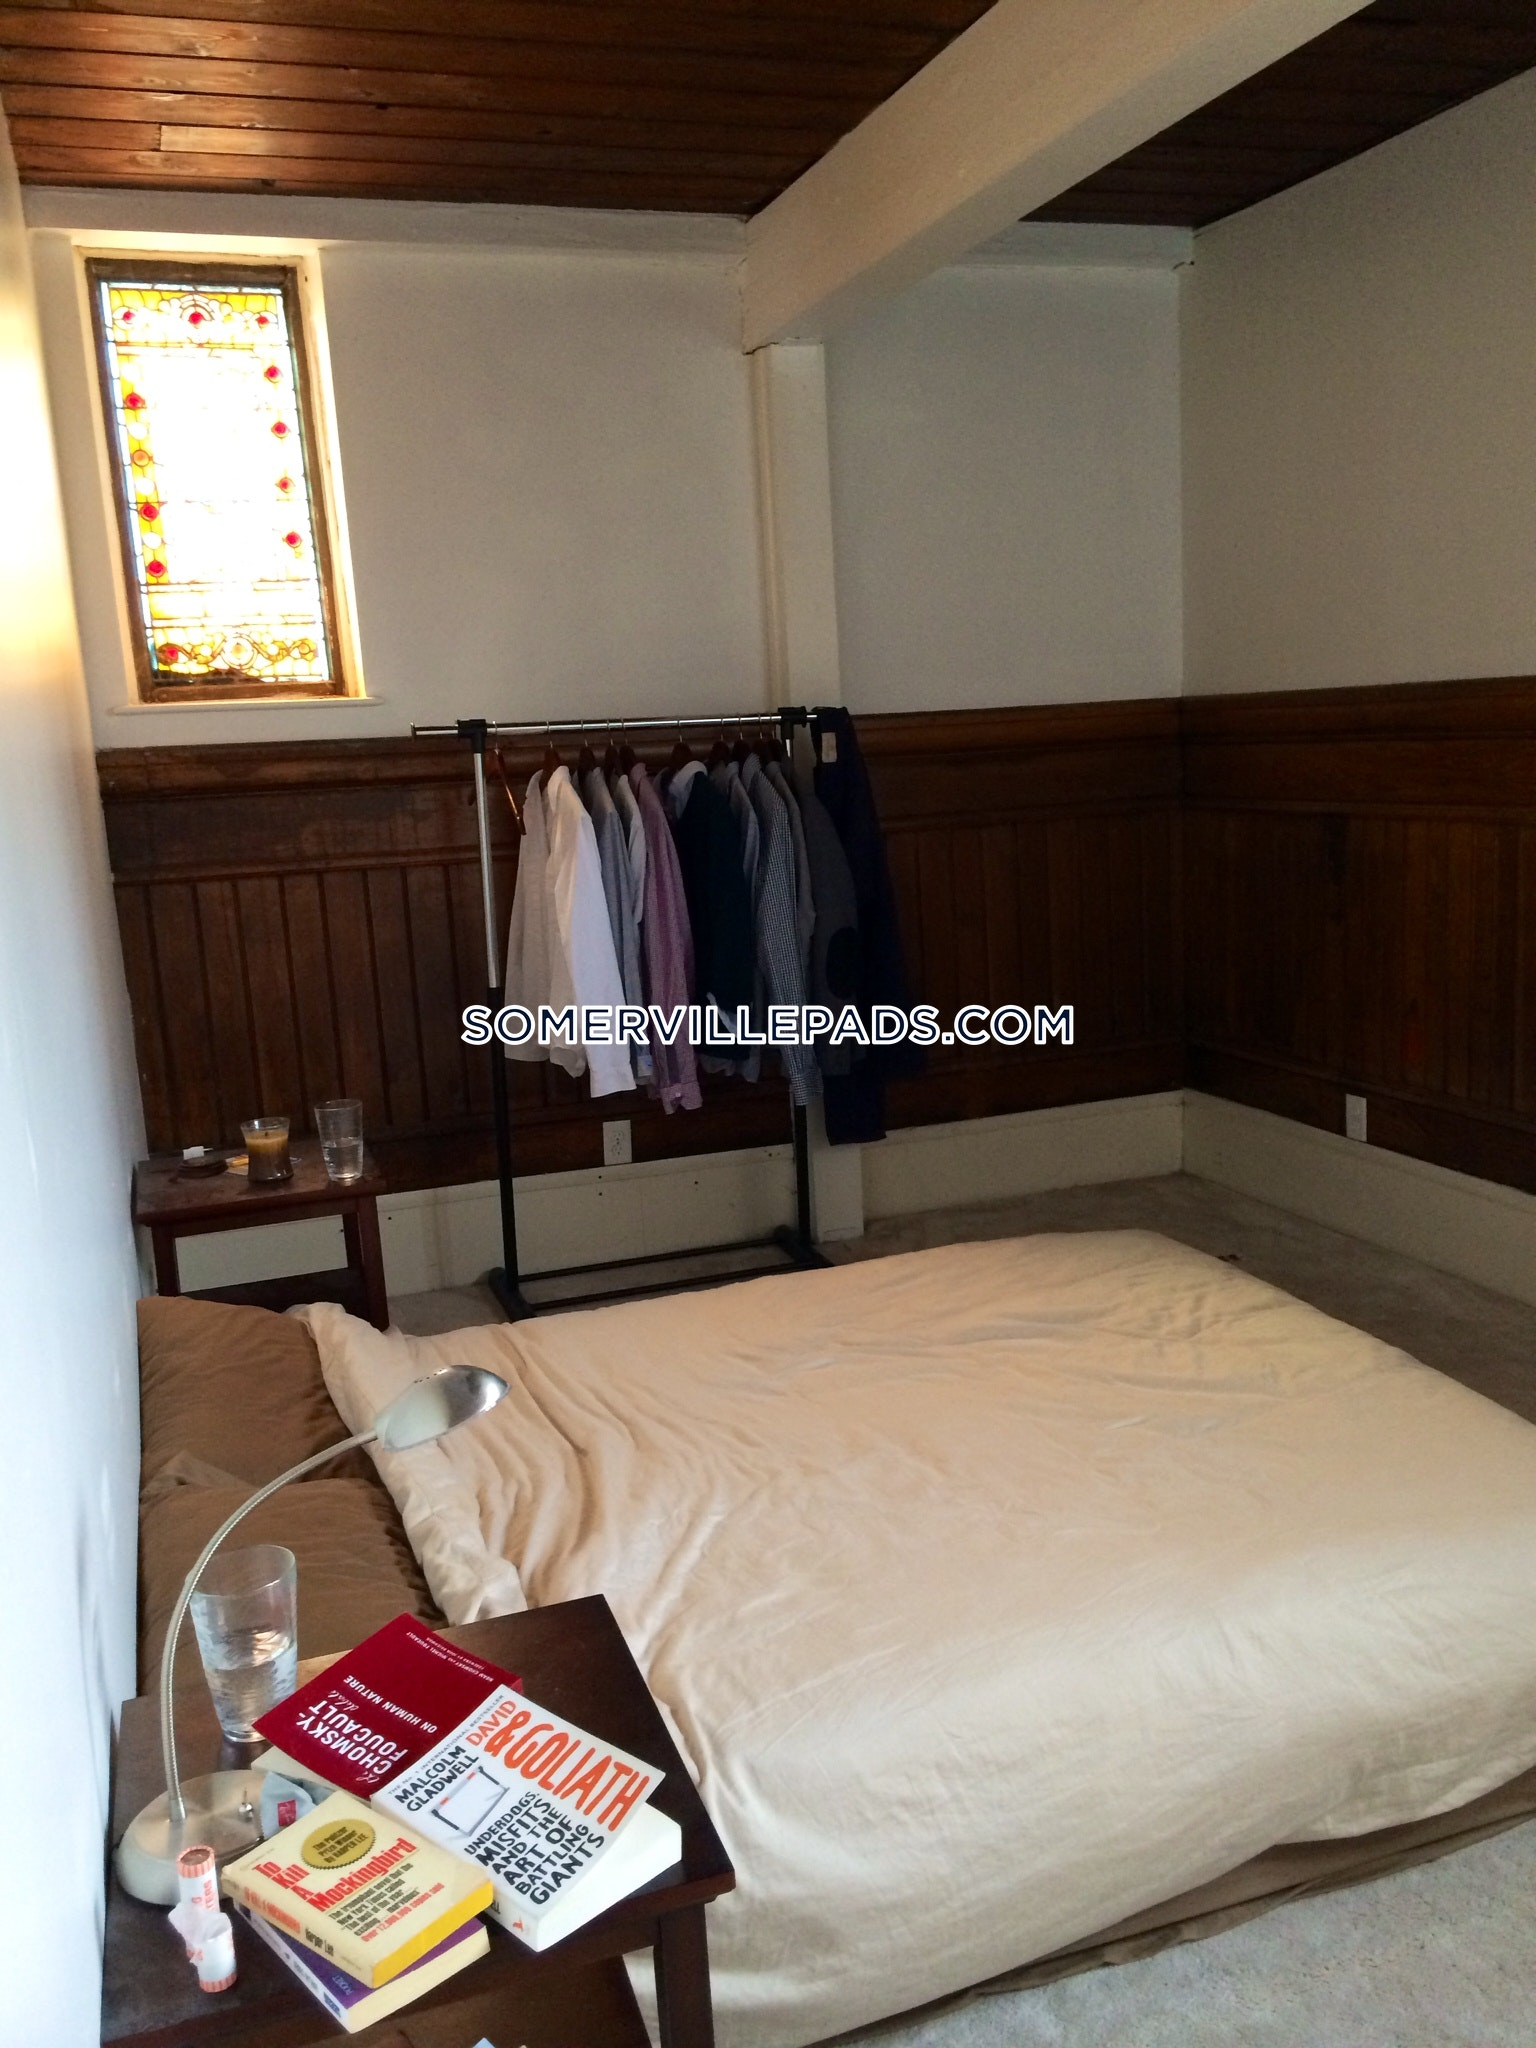 3-beds-15-baths-somerville-union-square-3300-433321